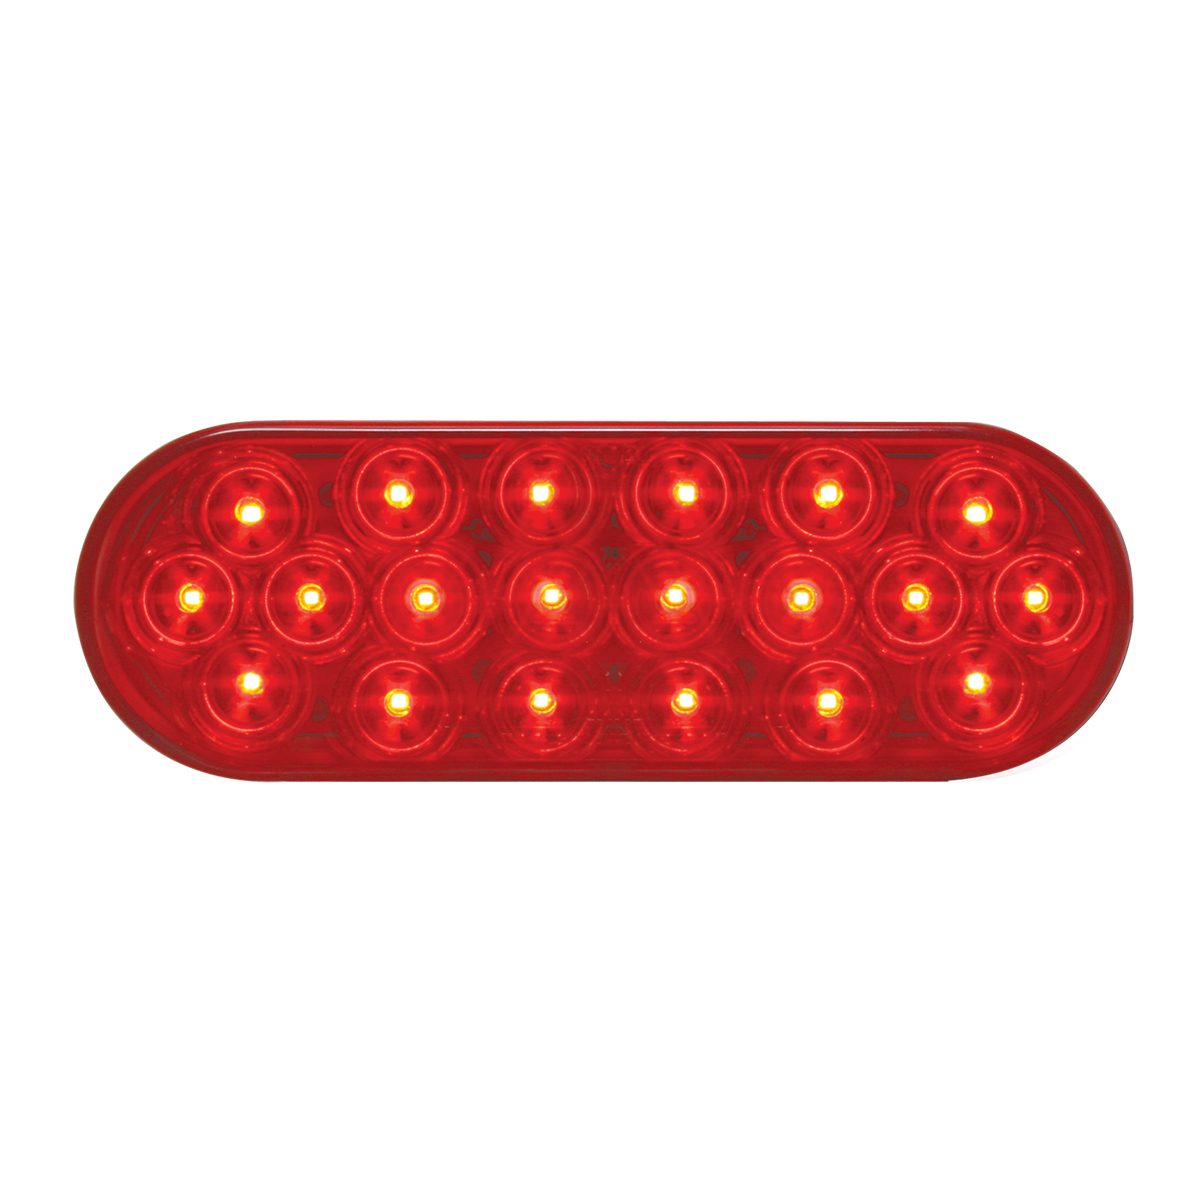 #87721 Oval Sealed Fleet LED Flat Red/Red Light